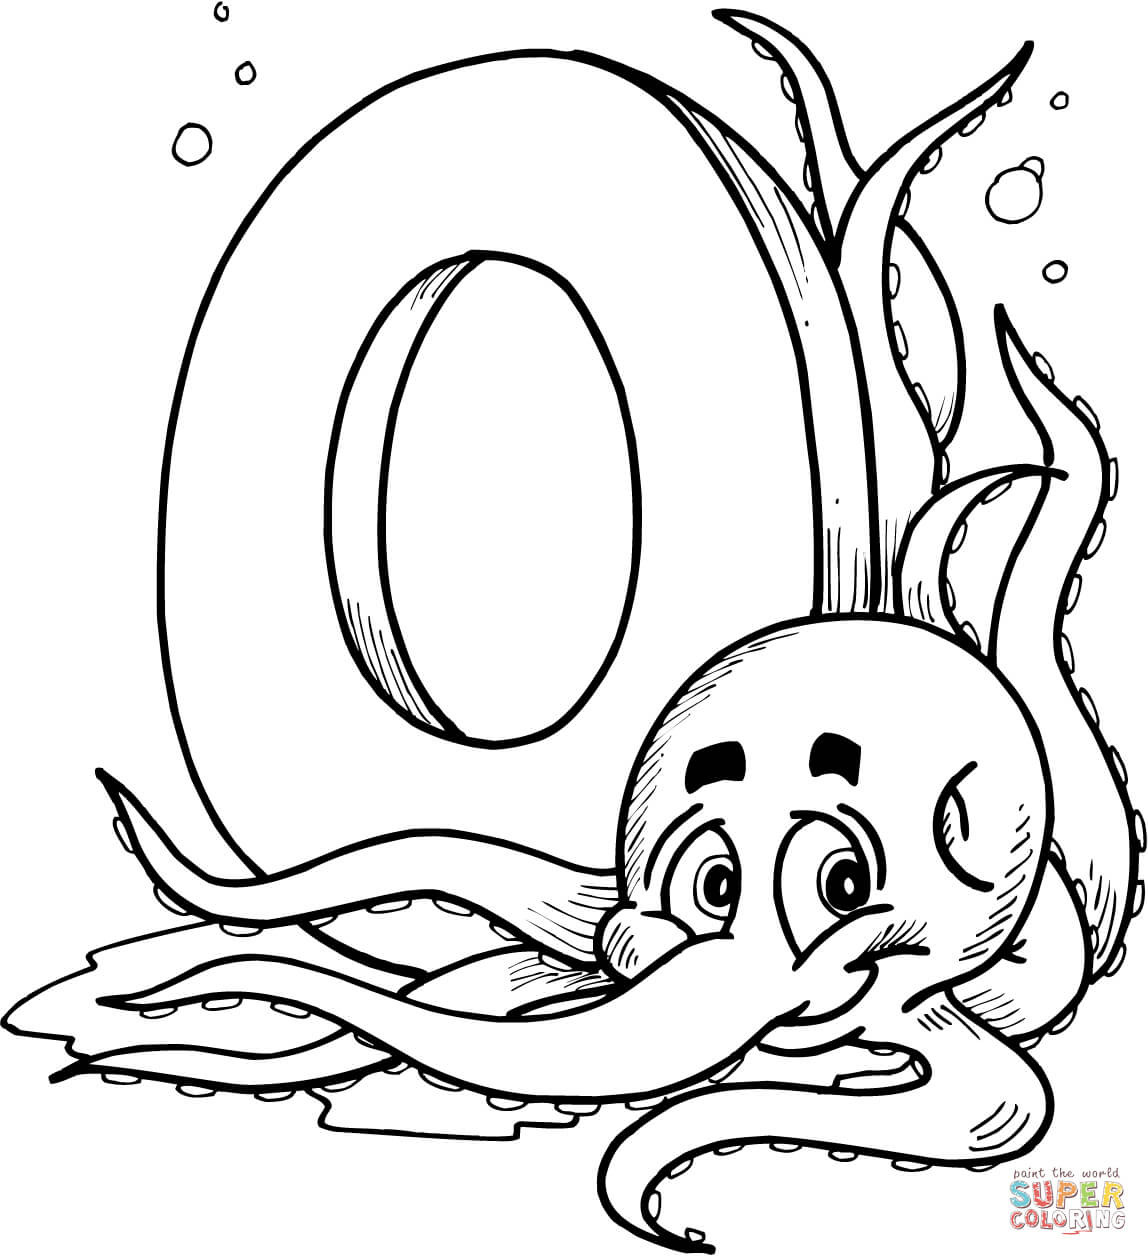 1148x1256 Letter O Is For Octopus Coloring Page Free Printable Pages